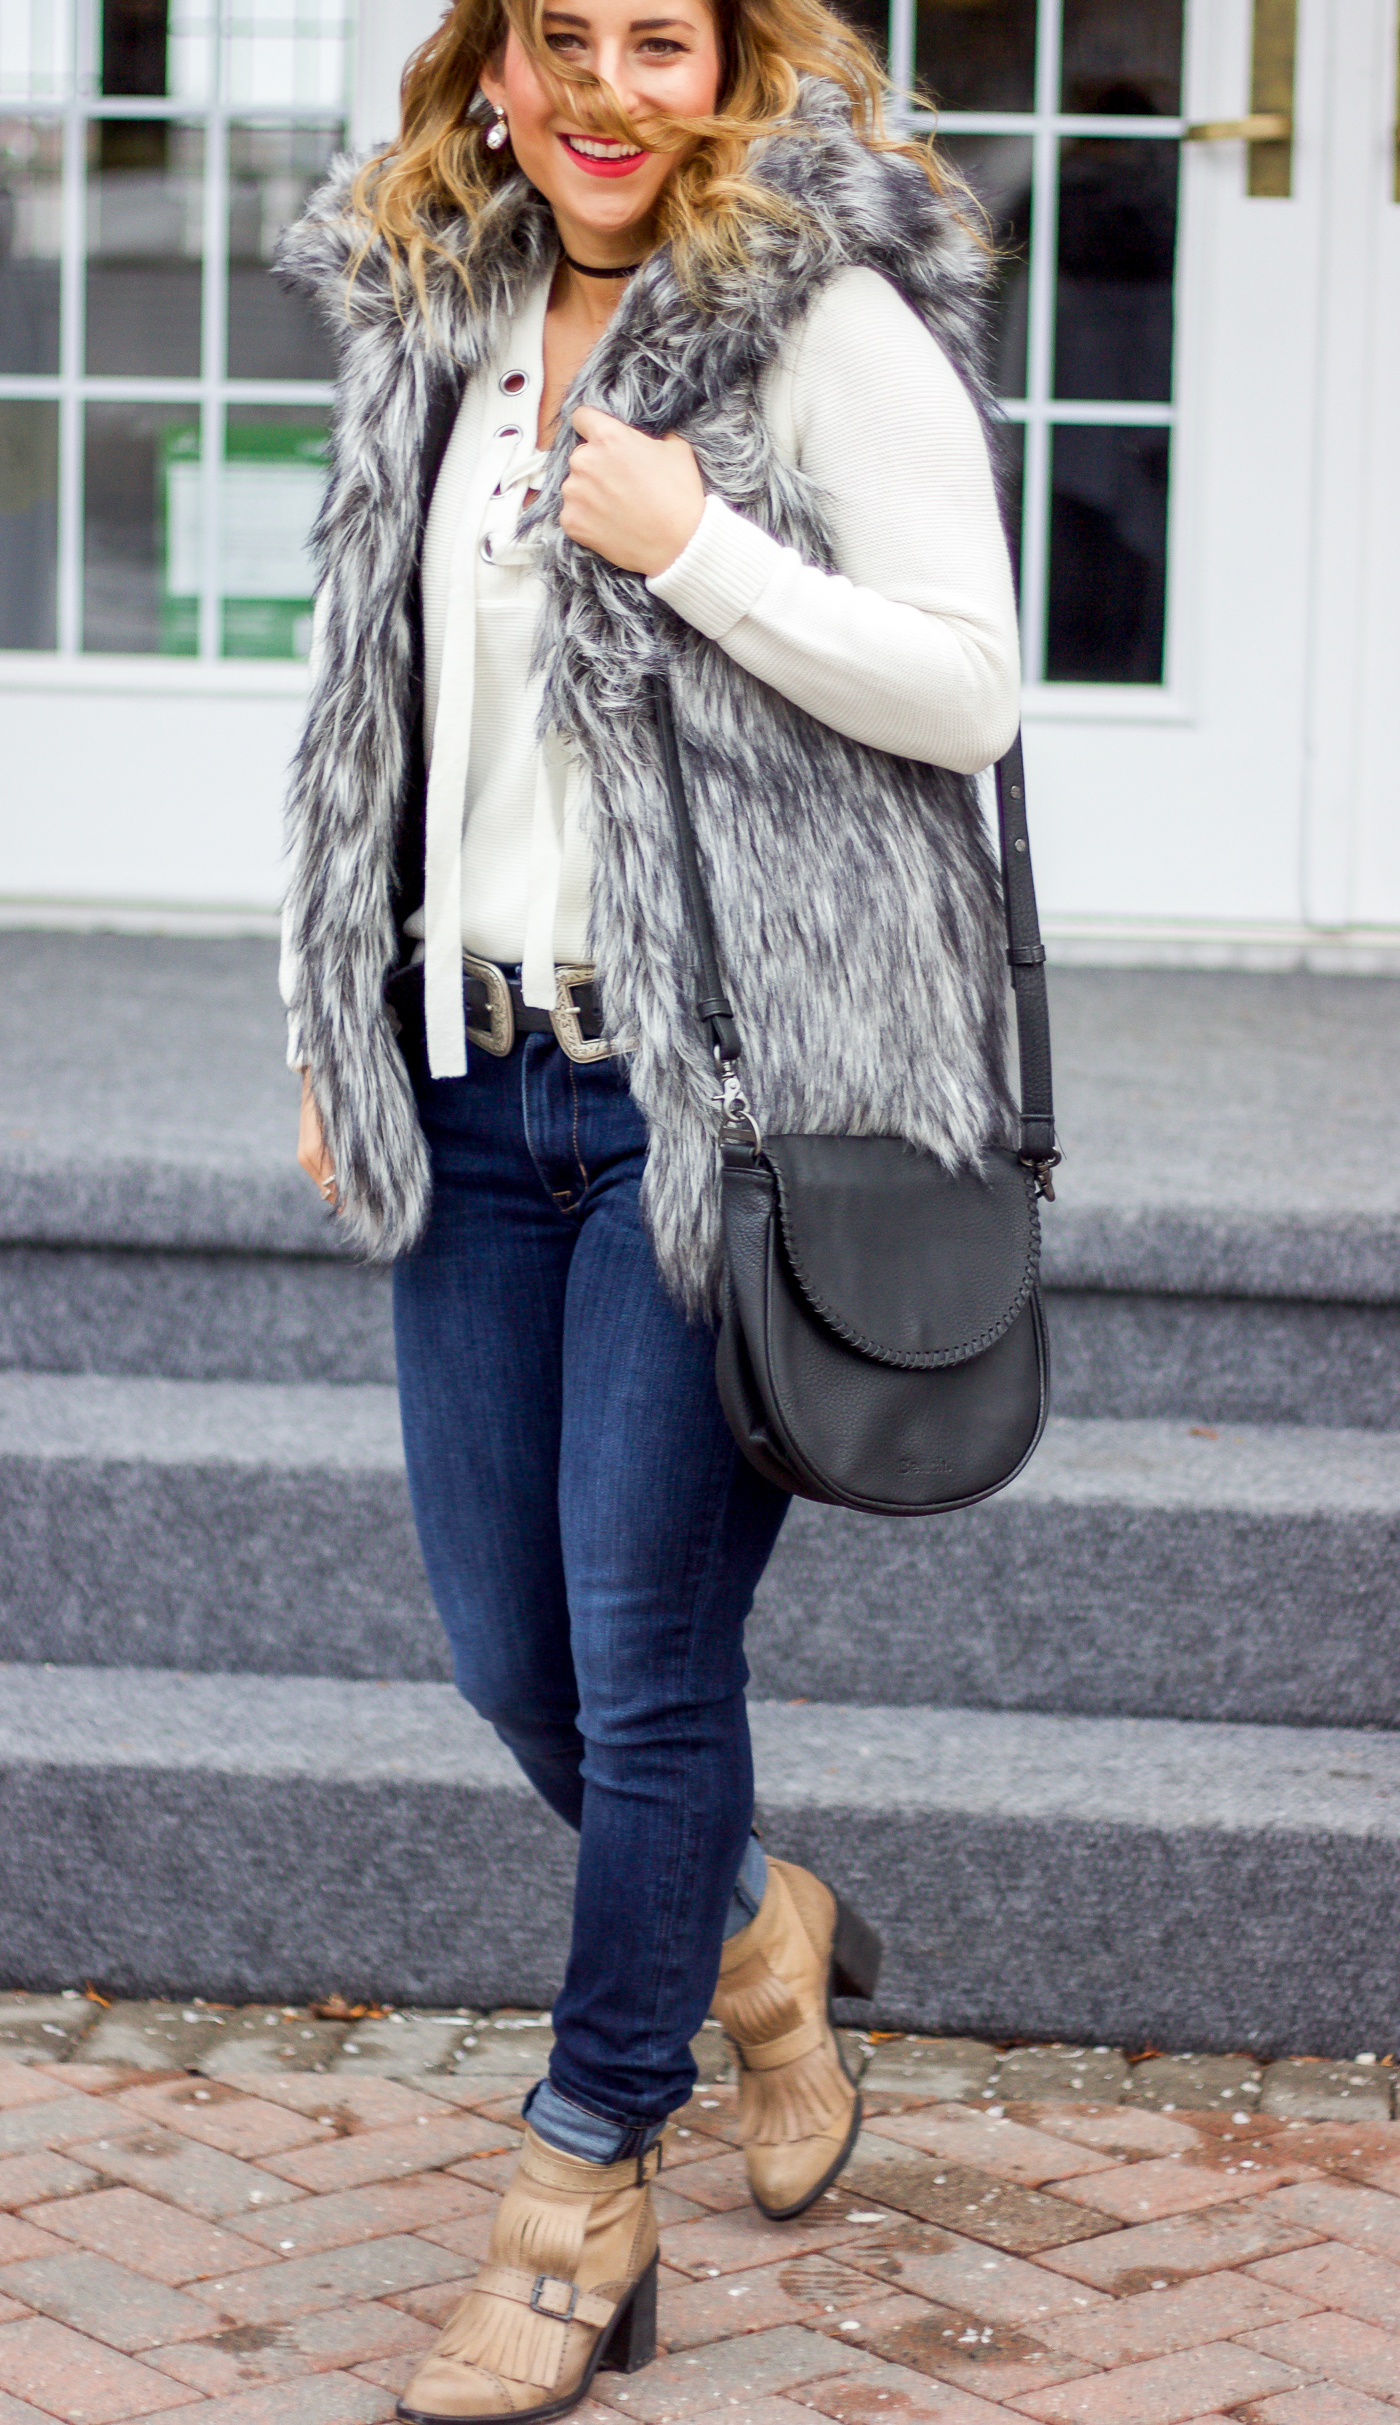 Canadian fashion and lifestyle blogger, Jackie Goldhar of Something About That, is wearing Fidelity jeans, a faux fur vest from Aritzia and a Bench Leather bag